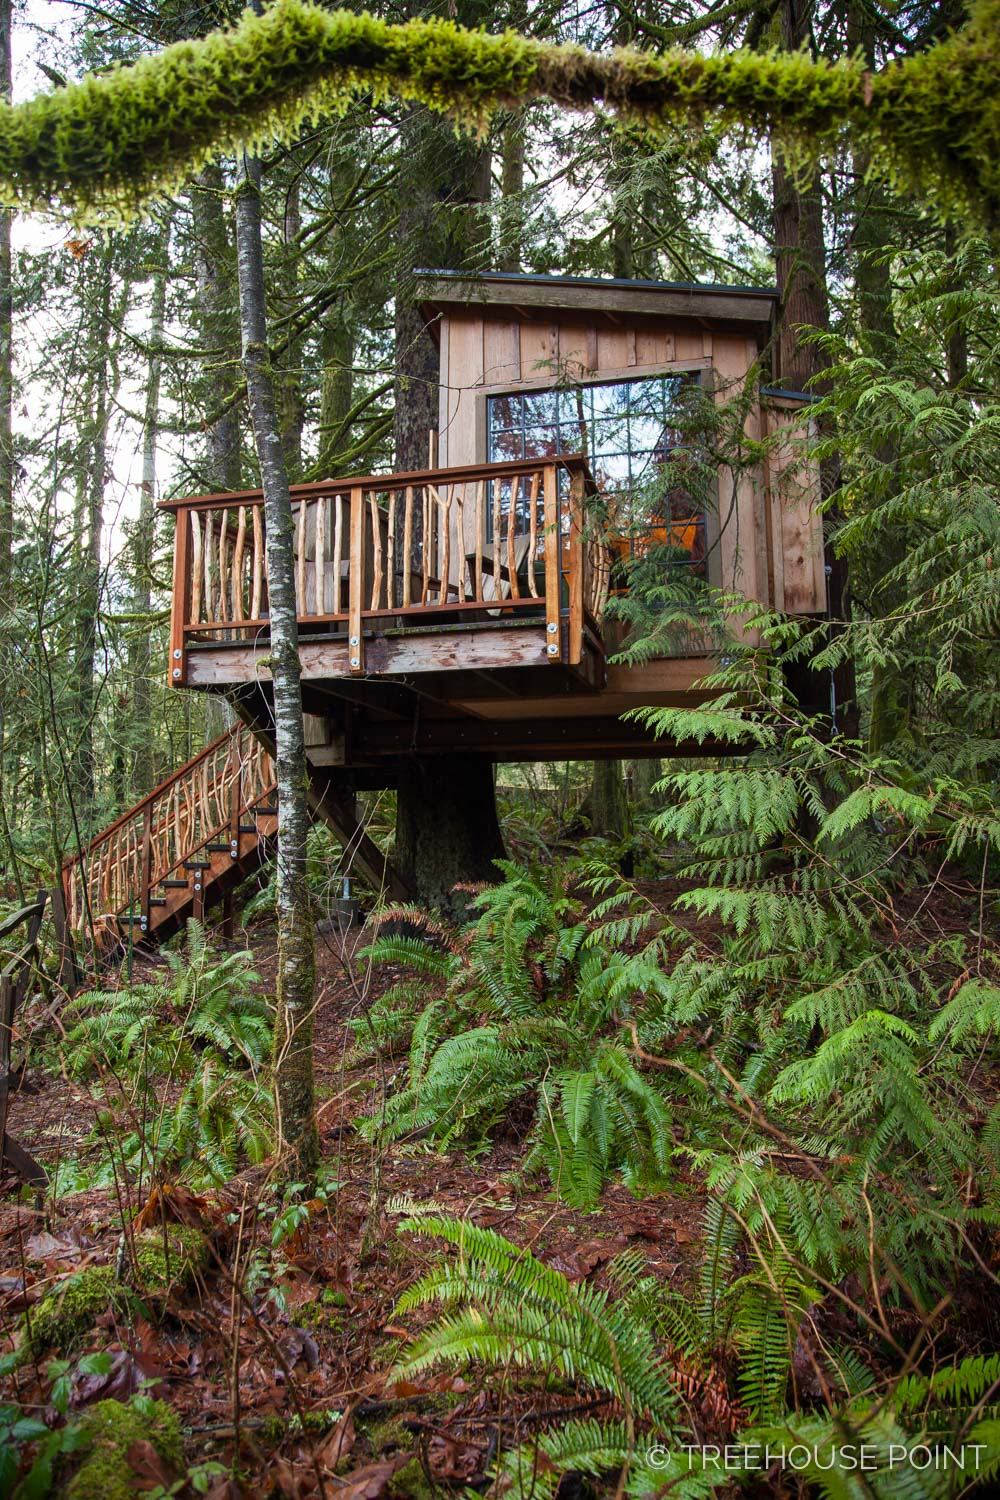 Nest_TreeHouse_Point_2018-7.jpg